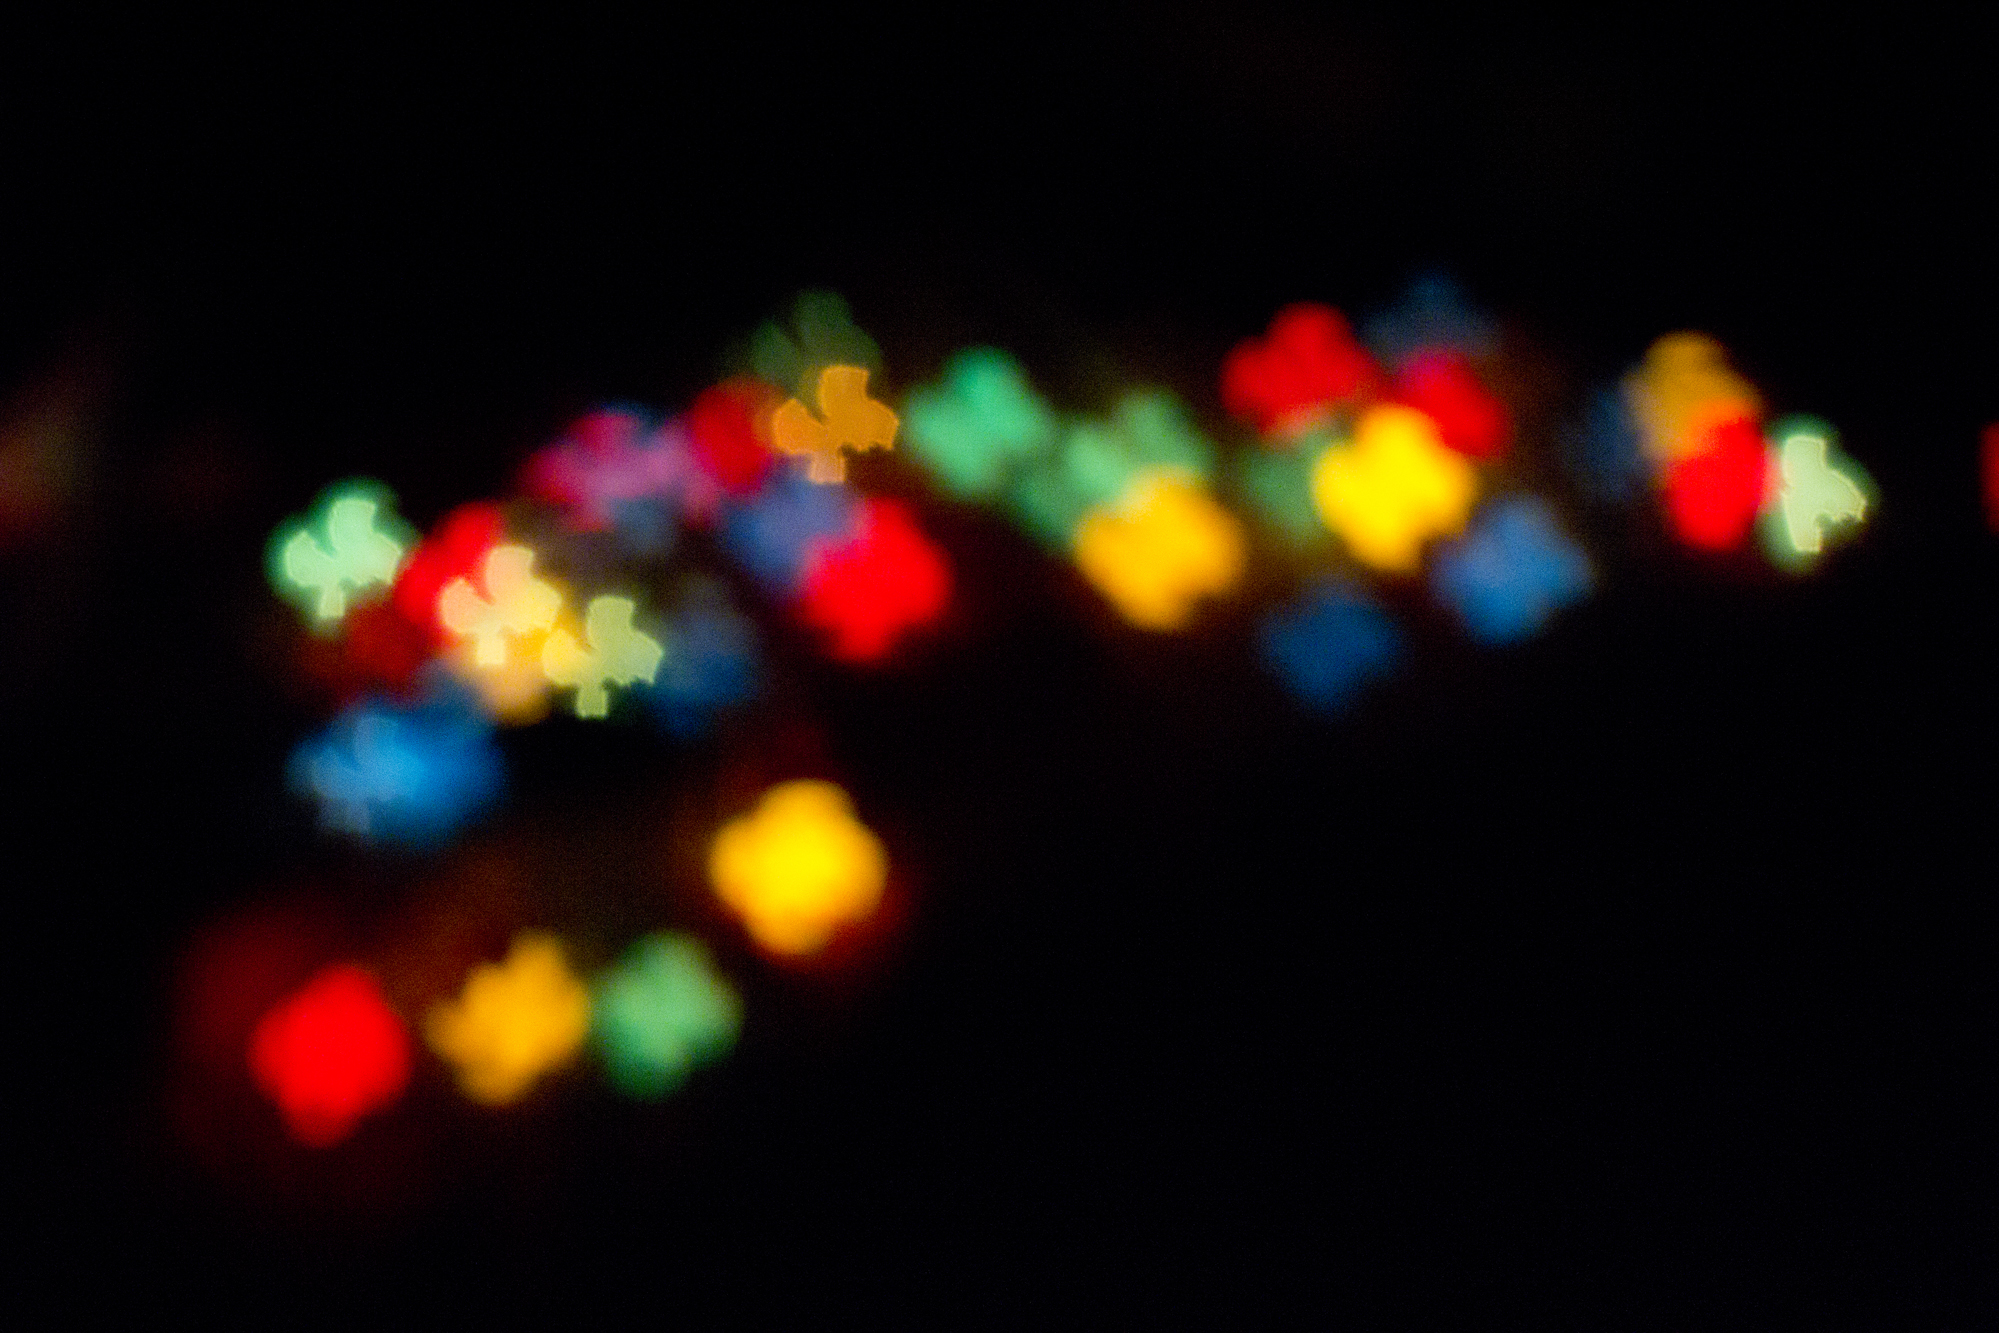 Abstract Bokeh with a play of Colours and shadows